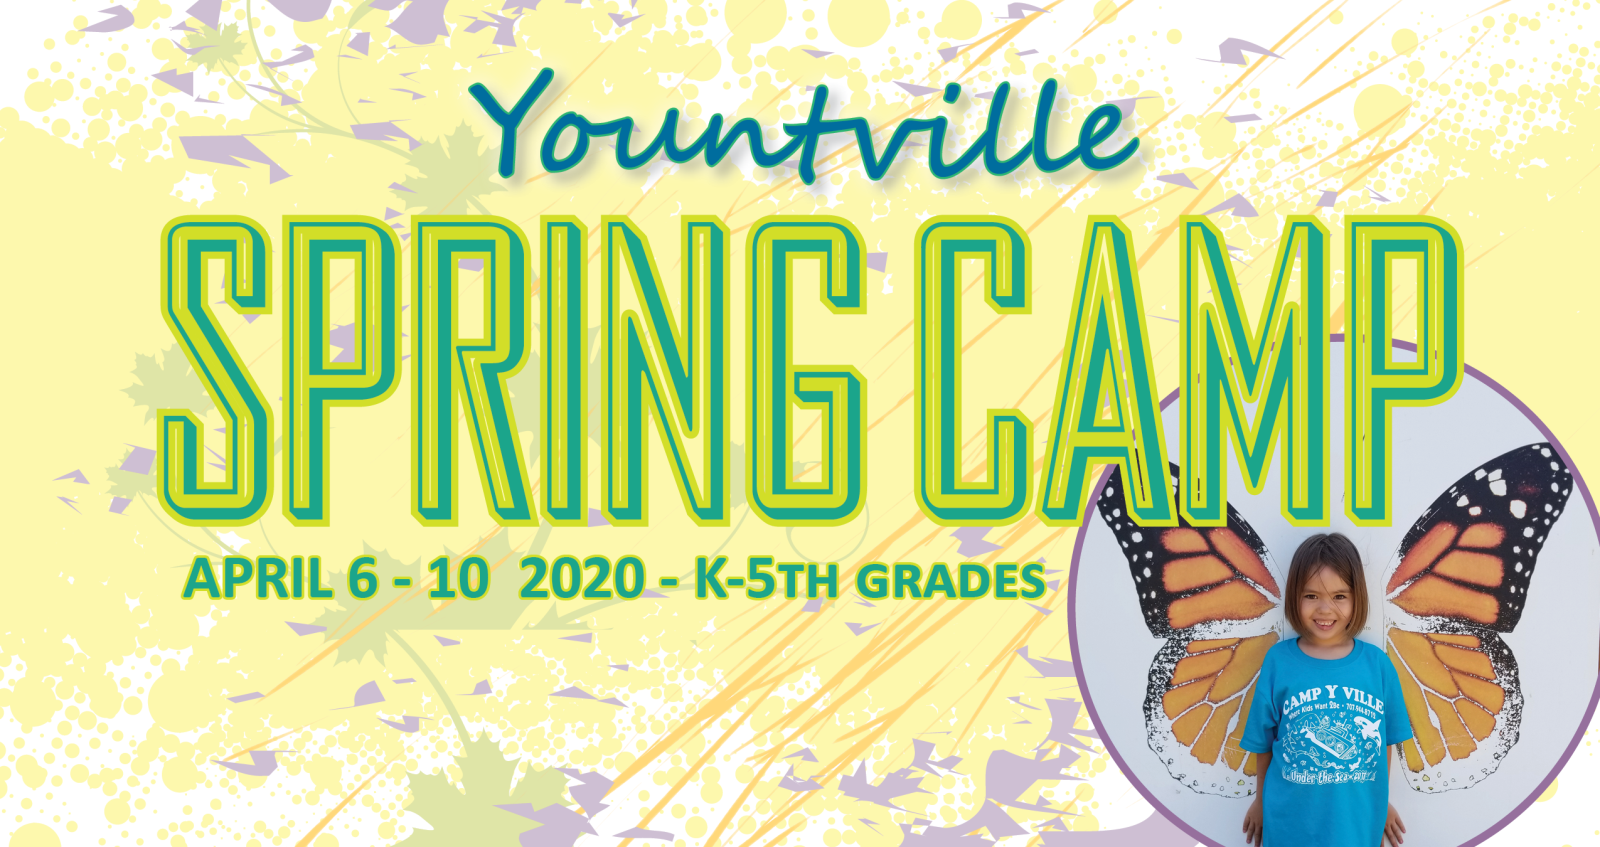 Spring Camp 2020, youth camp